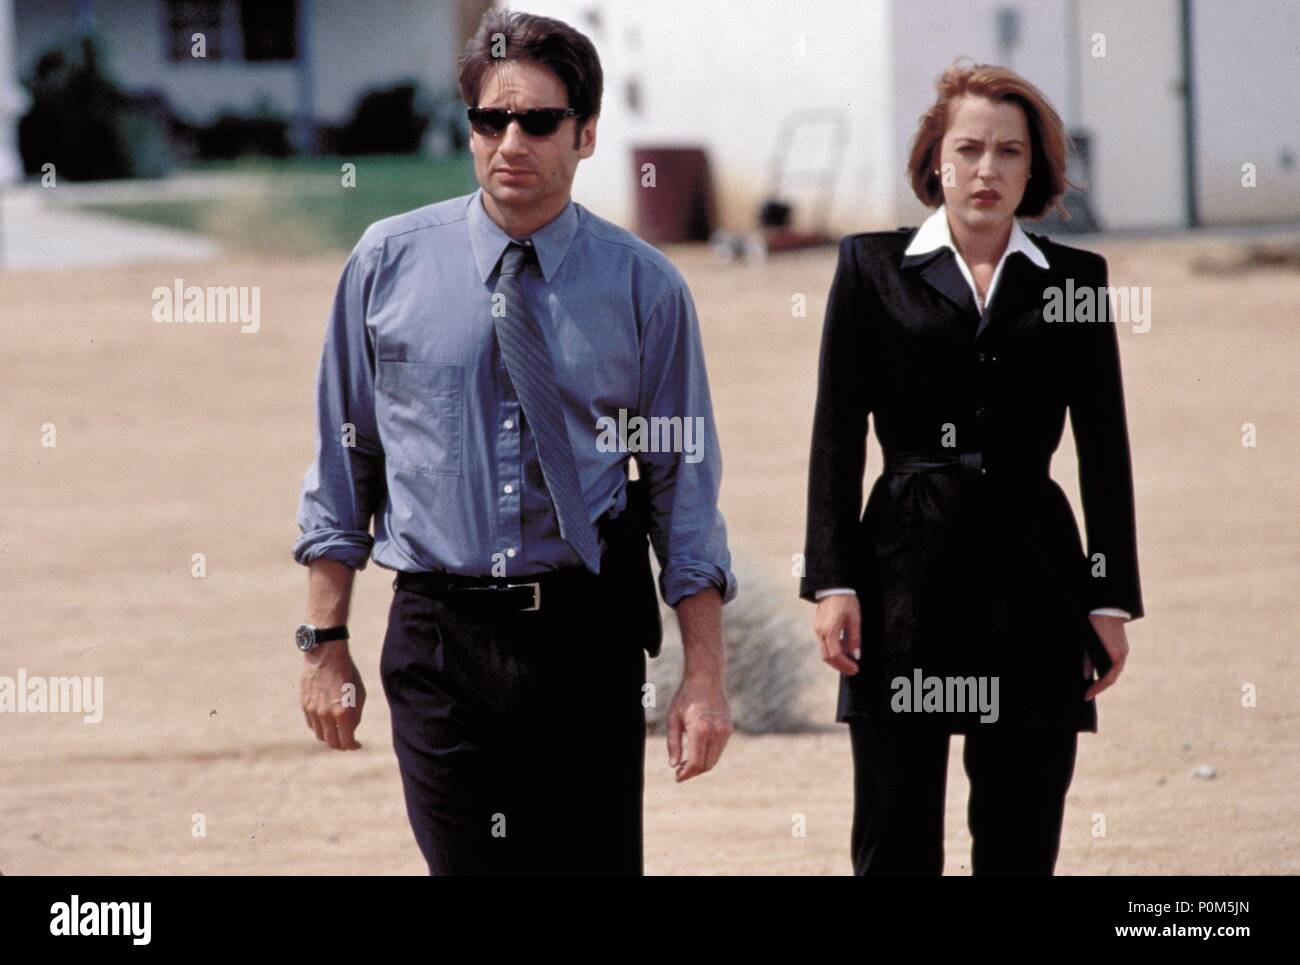 Original Film Title: X-FILES, THE.  English Title: X-FILES, THE.  Film Director: ROB BOWMAN.  Year: 1998.  Stars: DAVID DUCHOVNY; GILLIAN ANDERSON. Credit: 20TH CENTURY FOX / Album - Stock Image